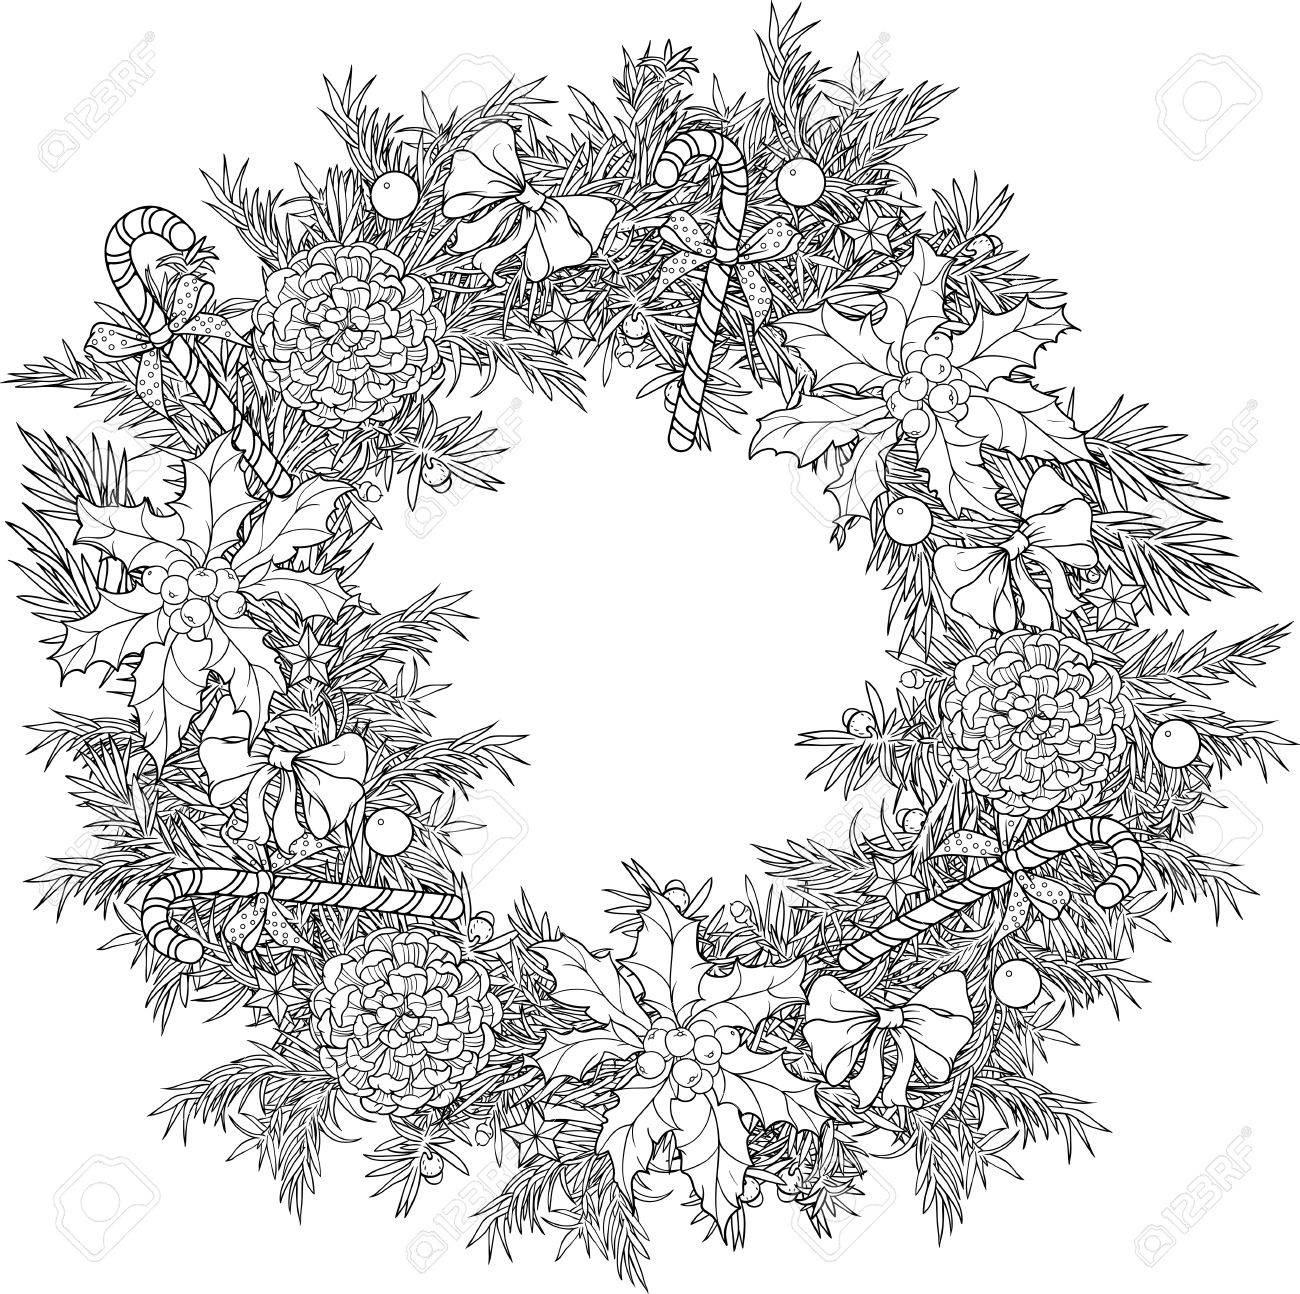 christmas coloring pages-holly leaves | Christmas coloring pages ... | 1294x1300